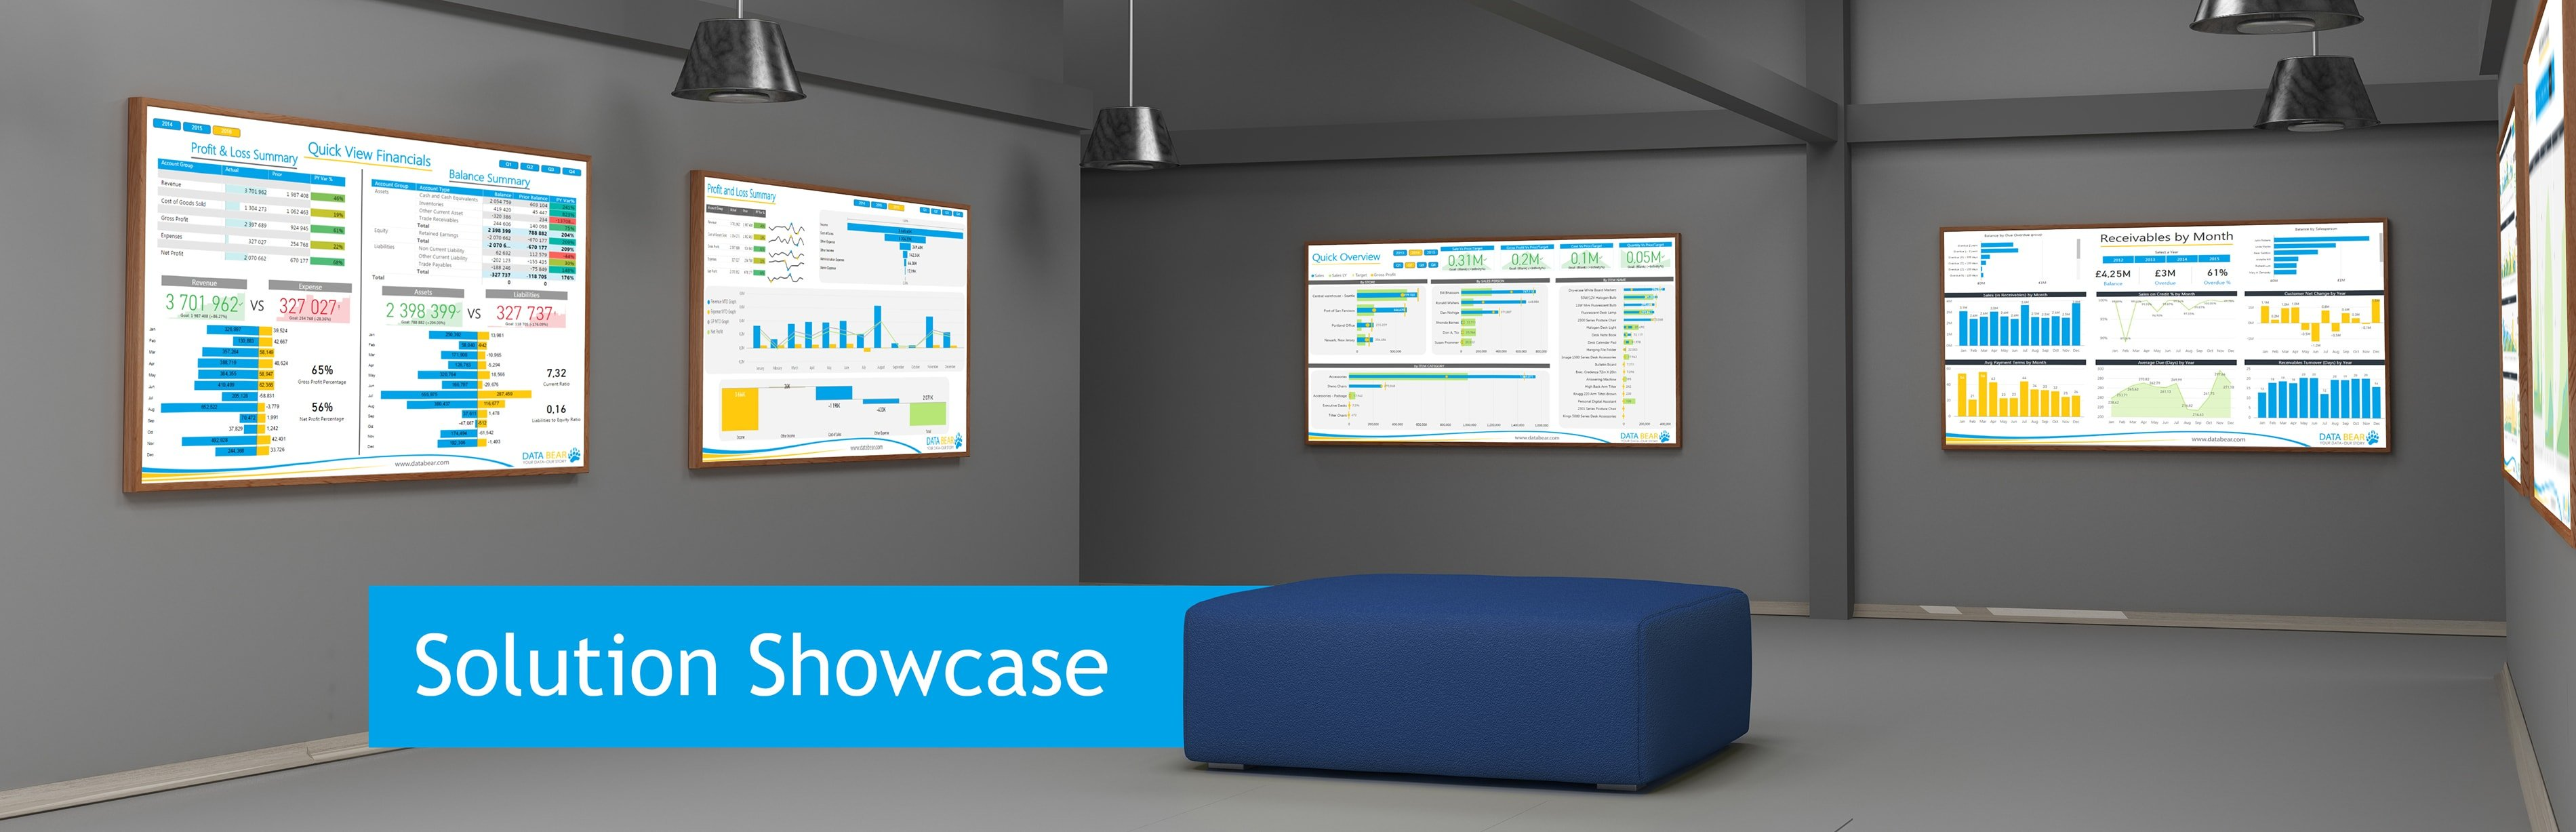 Data Bear Power BI solution showcase banner